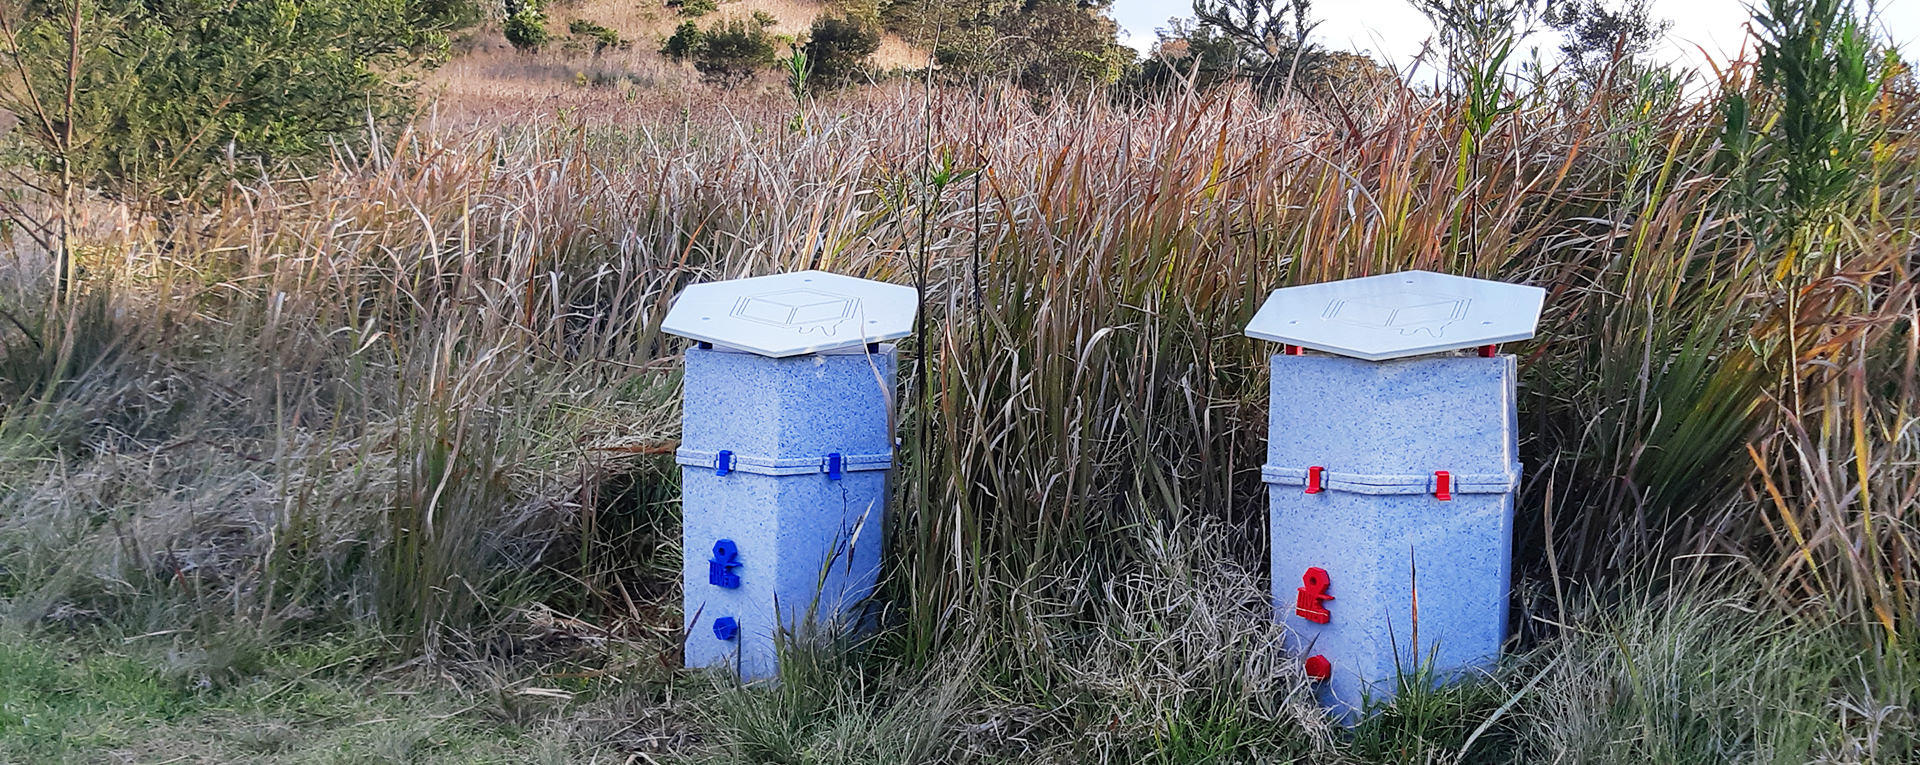 plastic-bee-hives-two-grass